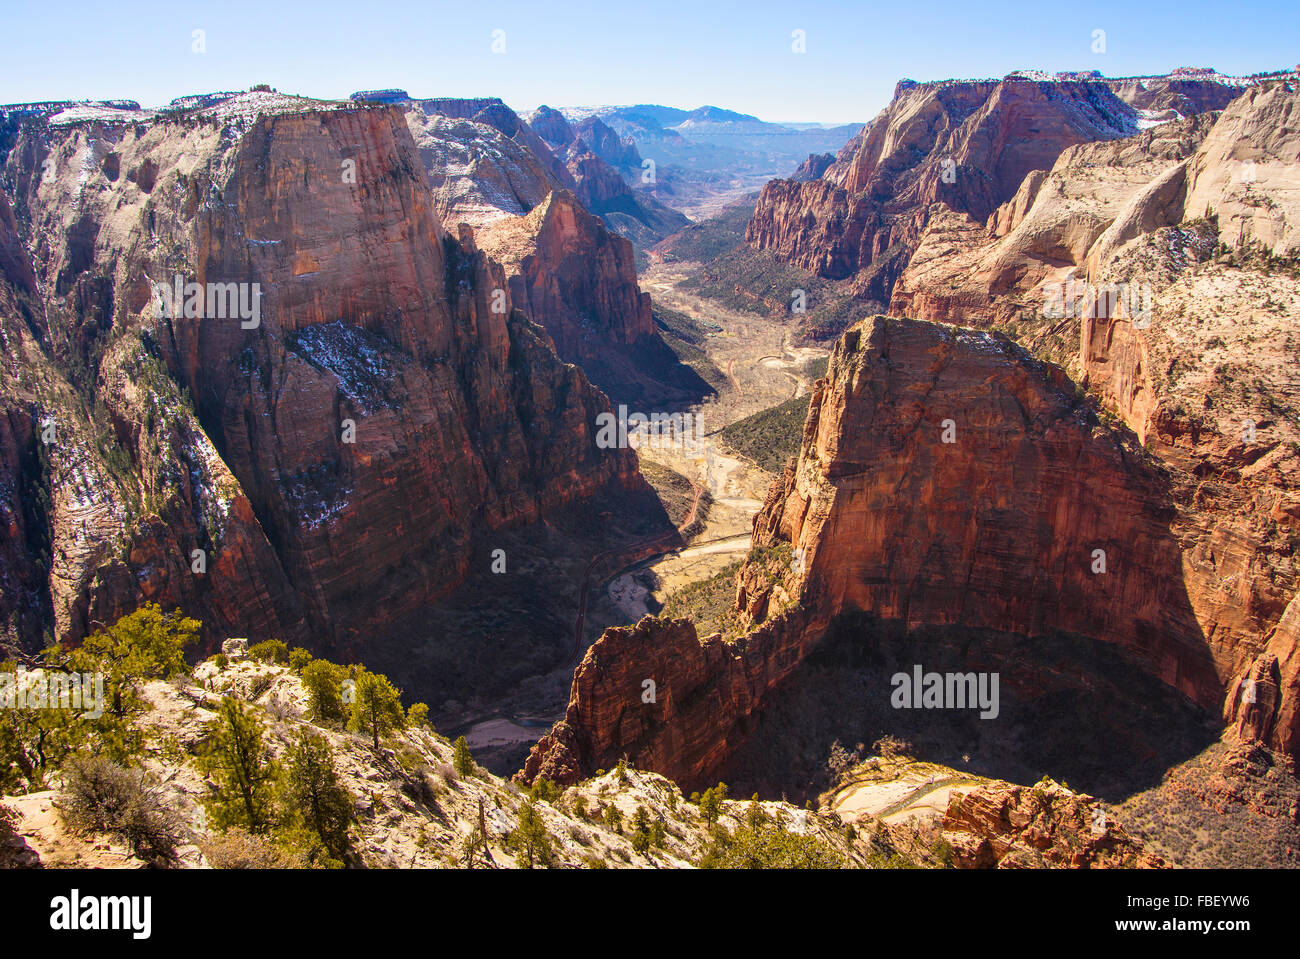 Canyon view, Zion National Park - Stock Image